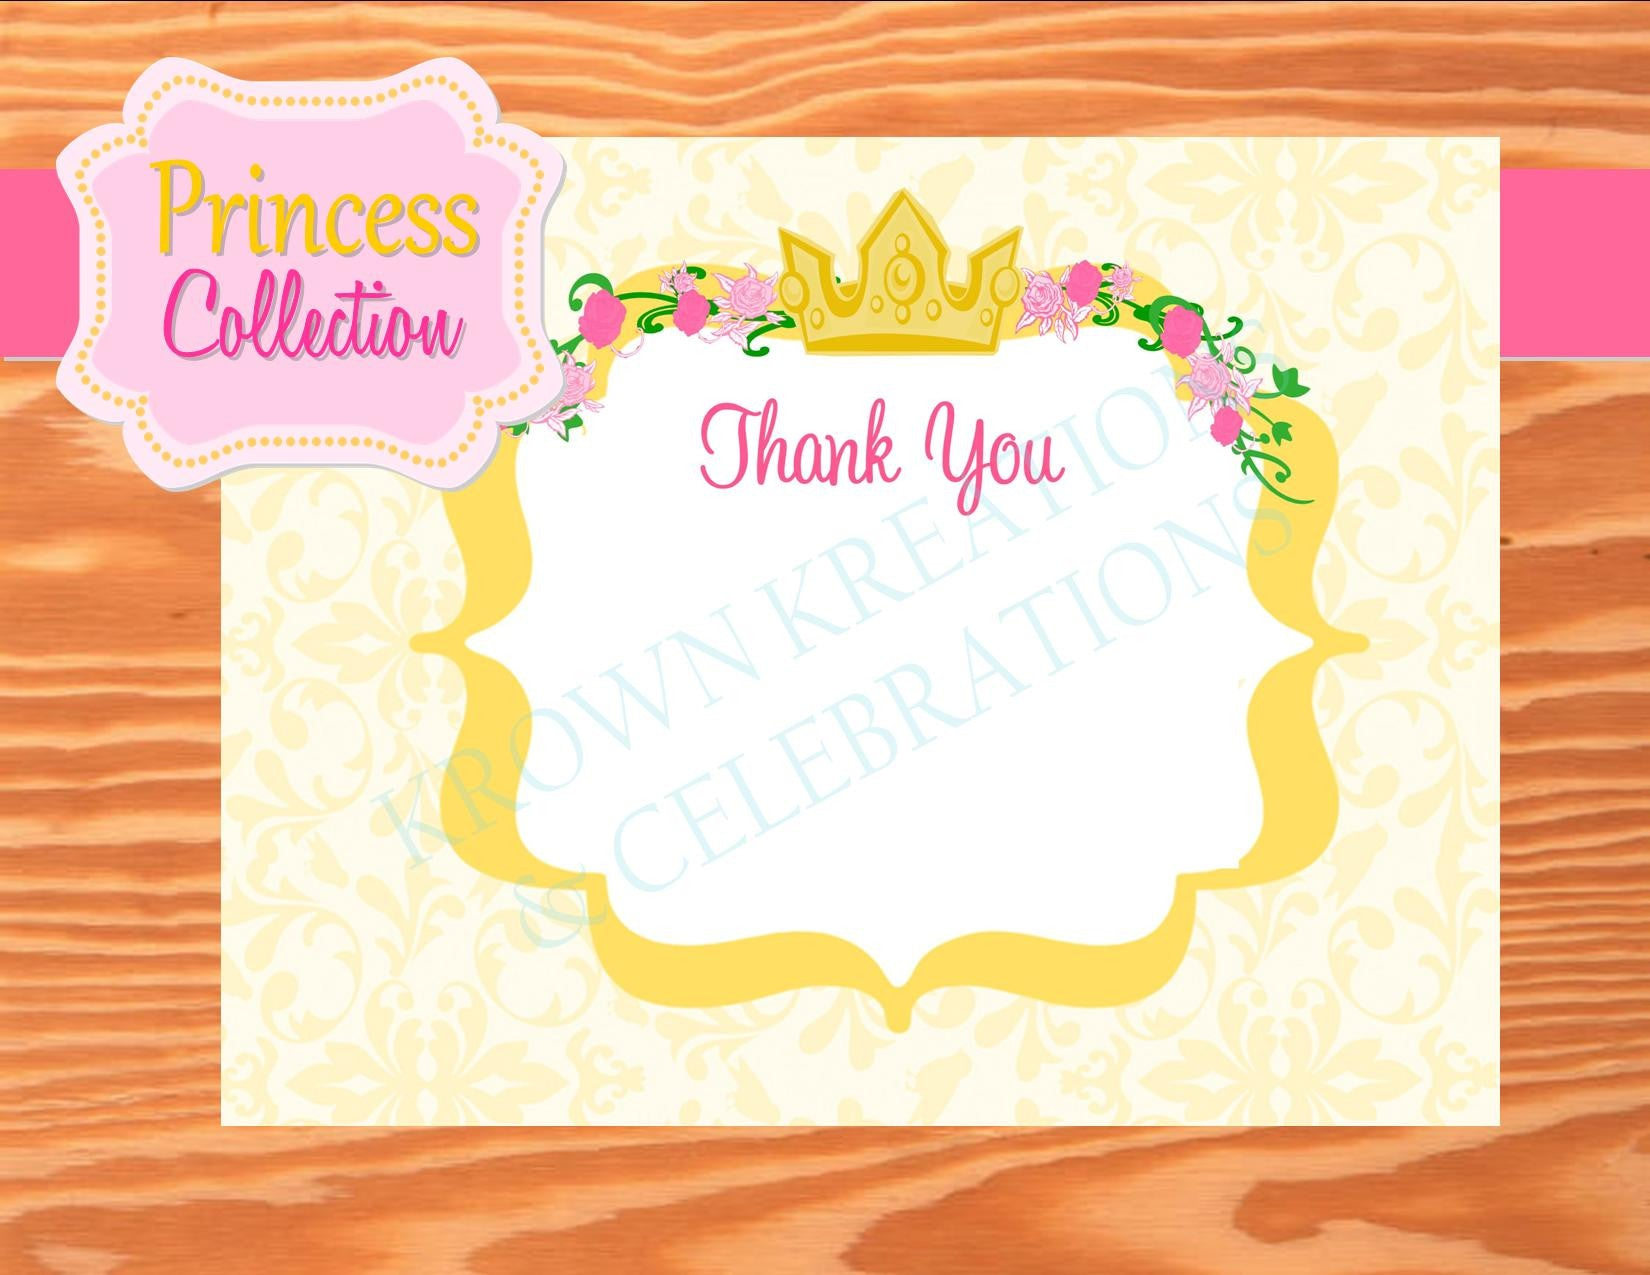 YELLOW PRINCESS PARTY - Princess THANK YOU - Princess Birthday Party - Princess Party